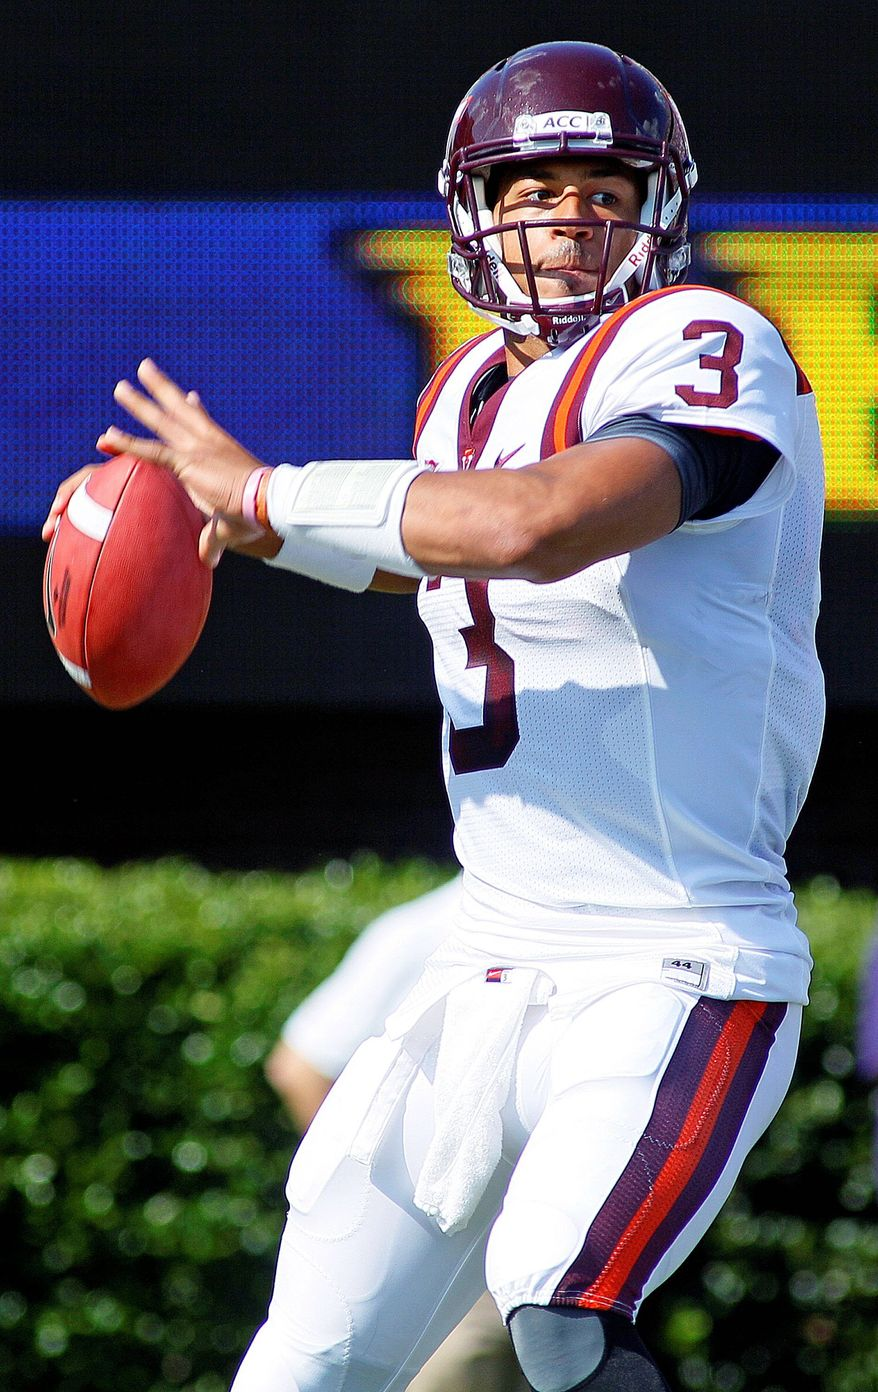 Virginia Tech sophomore QB Logan Thomas completed 8 of 20 passes for 91 yards against East Carolina. (Associated Press)